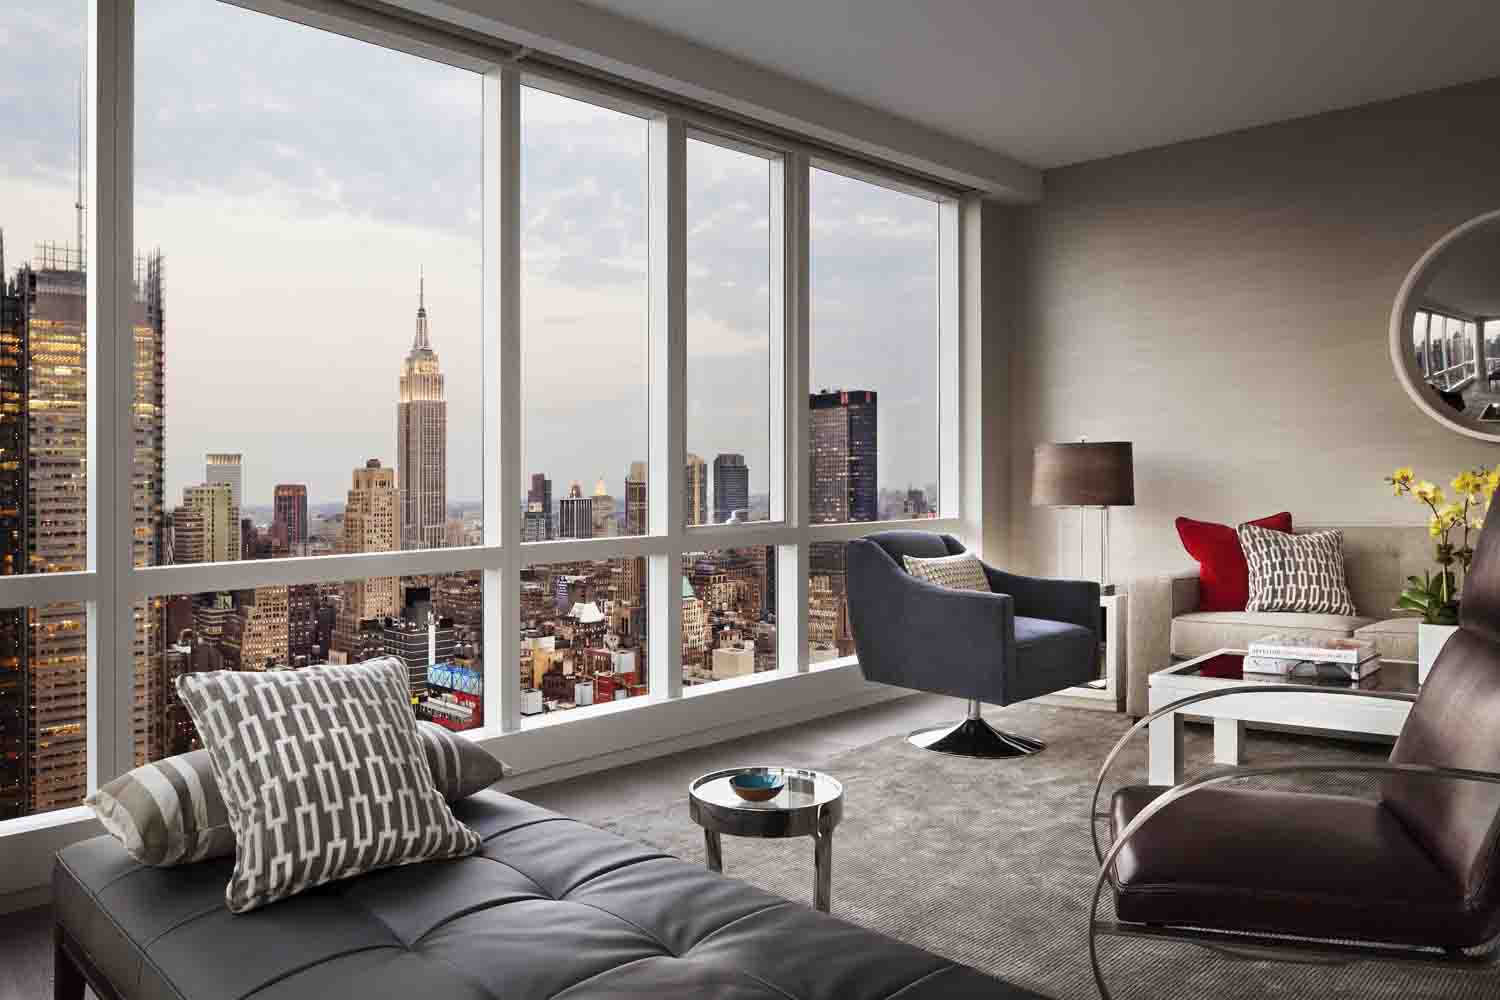 new york city luxury rental blog archives for july 2012 luxury